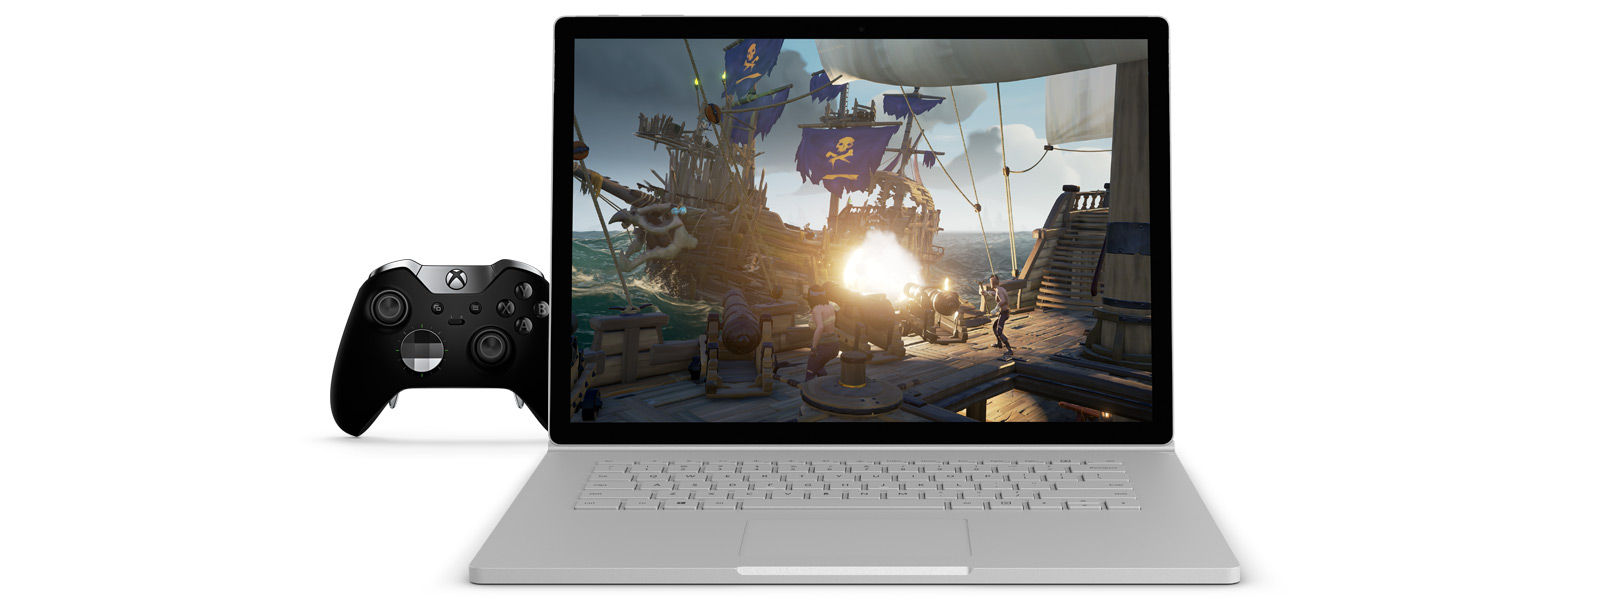 Sea of Thieves spelillustration på en 15 tums Surface Book 2, bredvid en Xbox Elite-kontroll